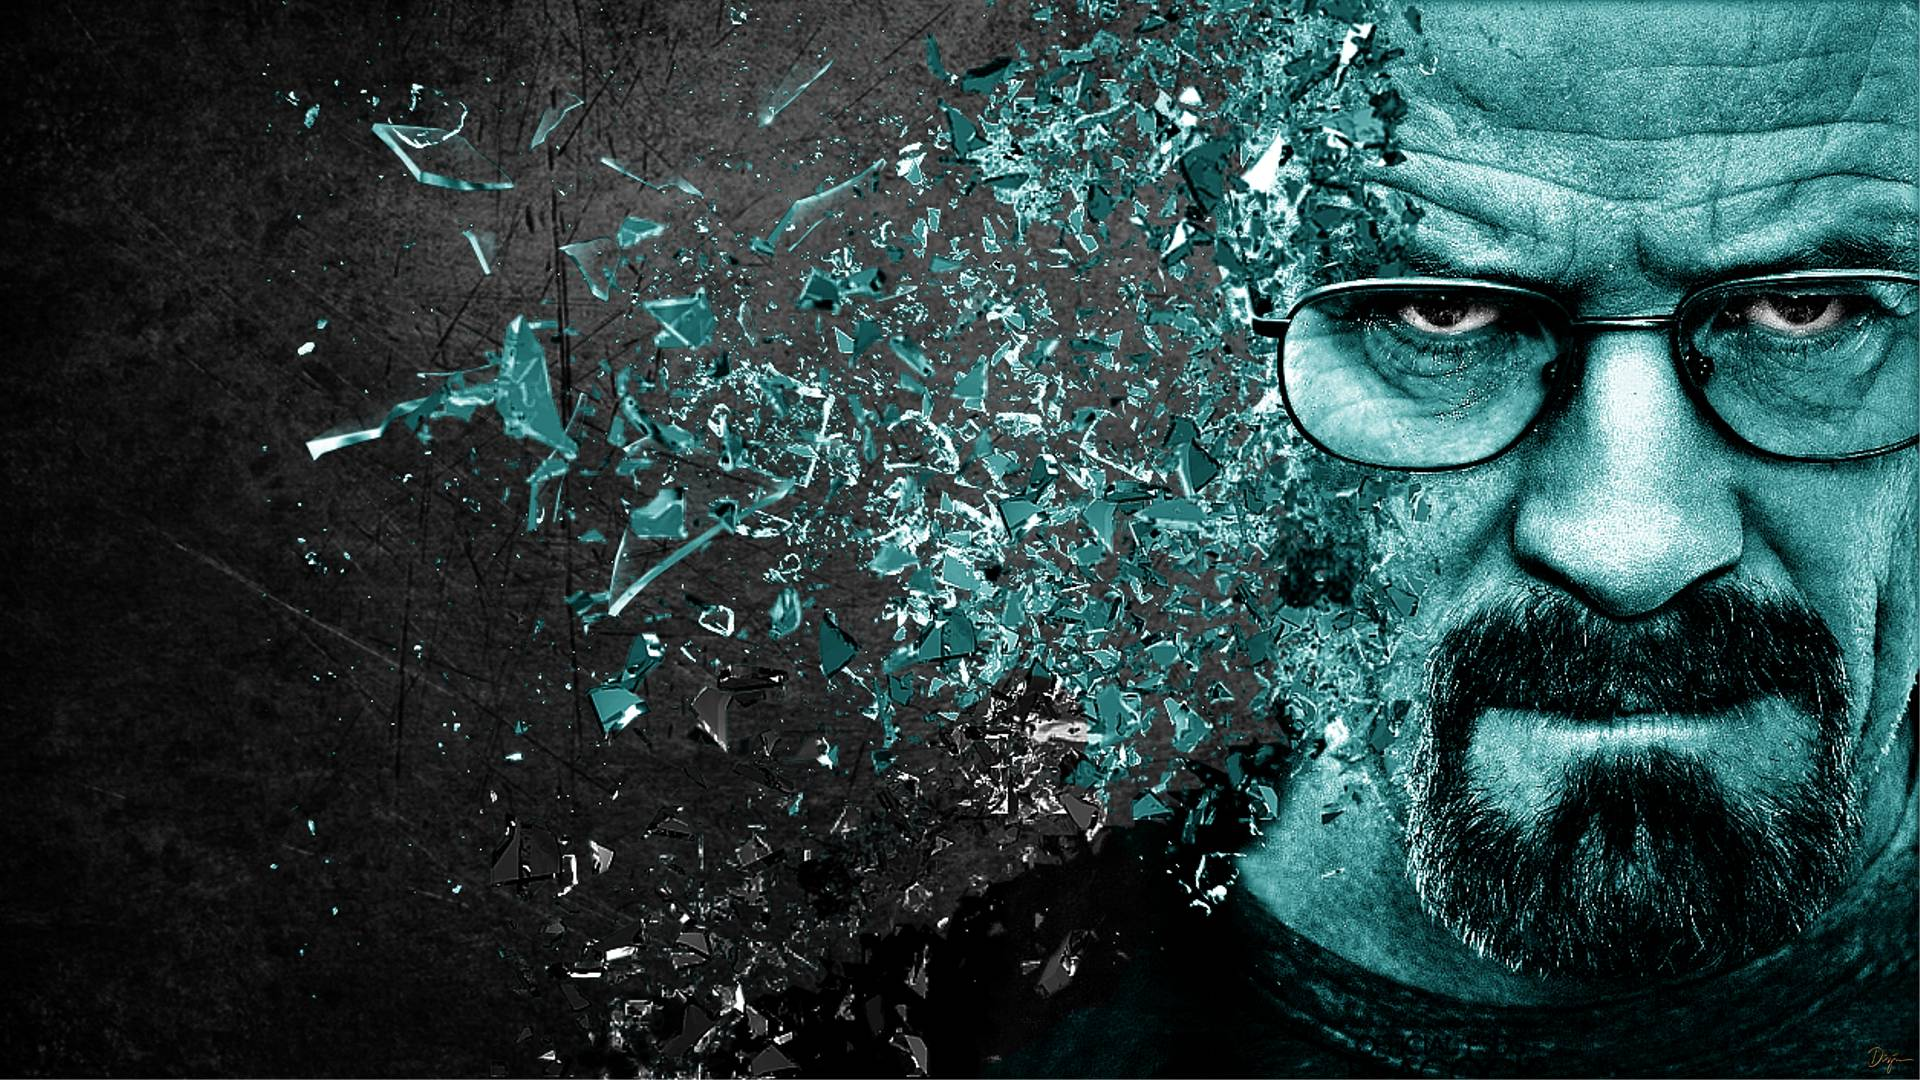 Breaking Bad Wallpapers - Wallpaper Cave Wallpaperswide